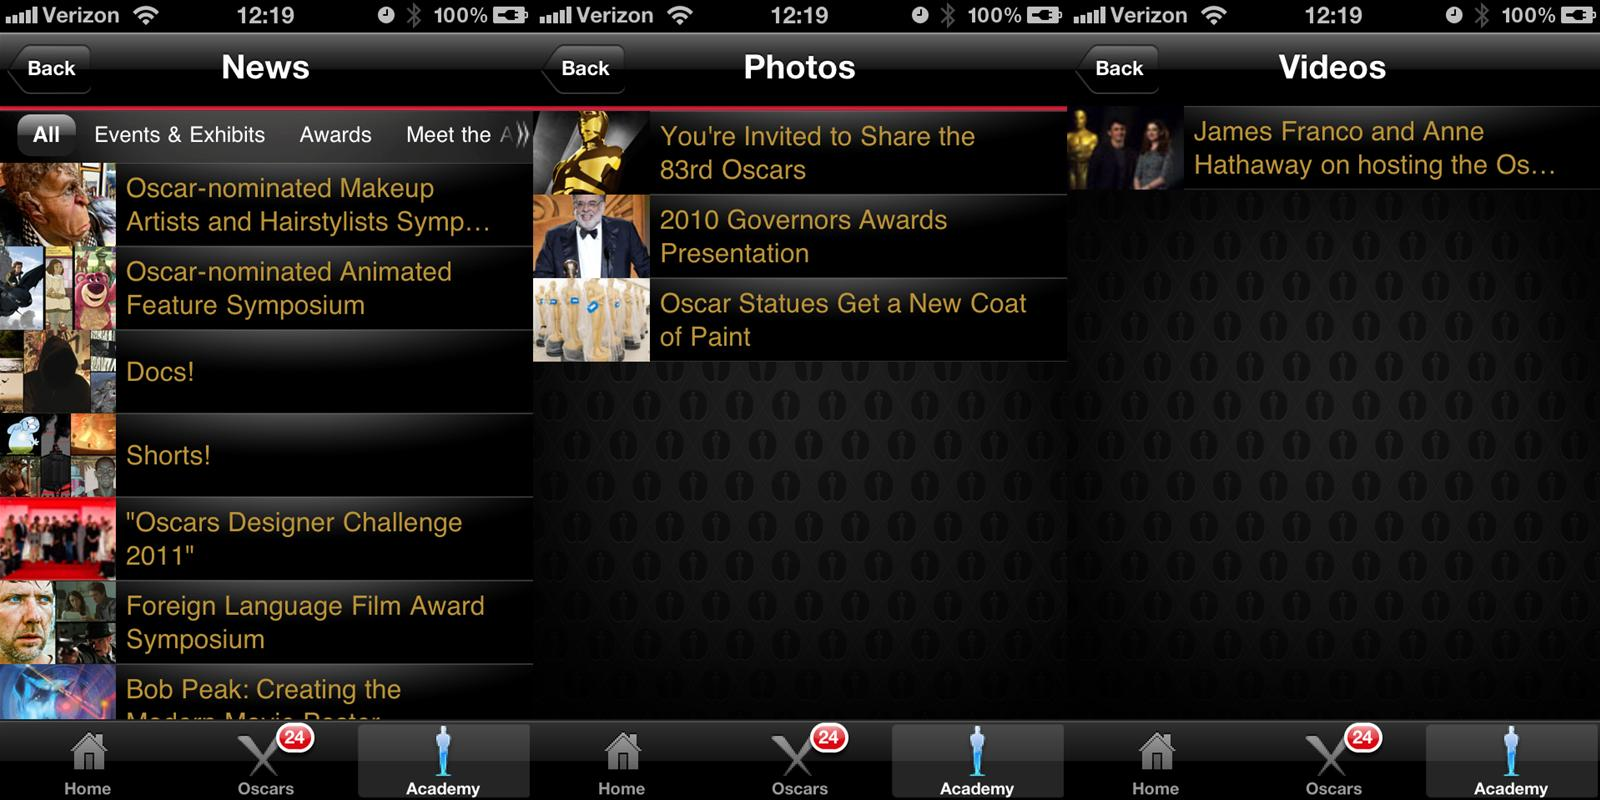 Make Your Oscar Night Interactive With These 2 Apps For Your